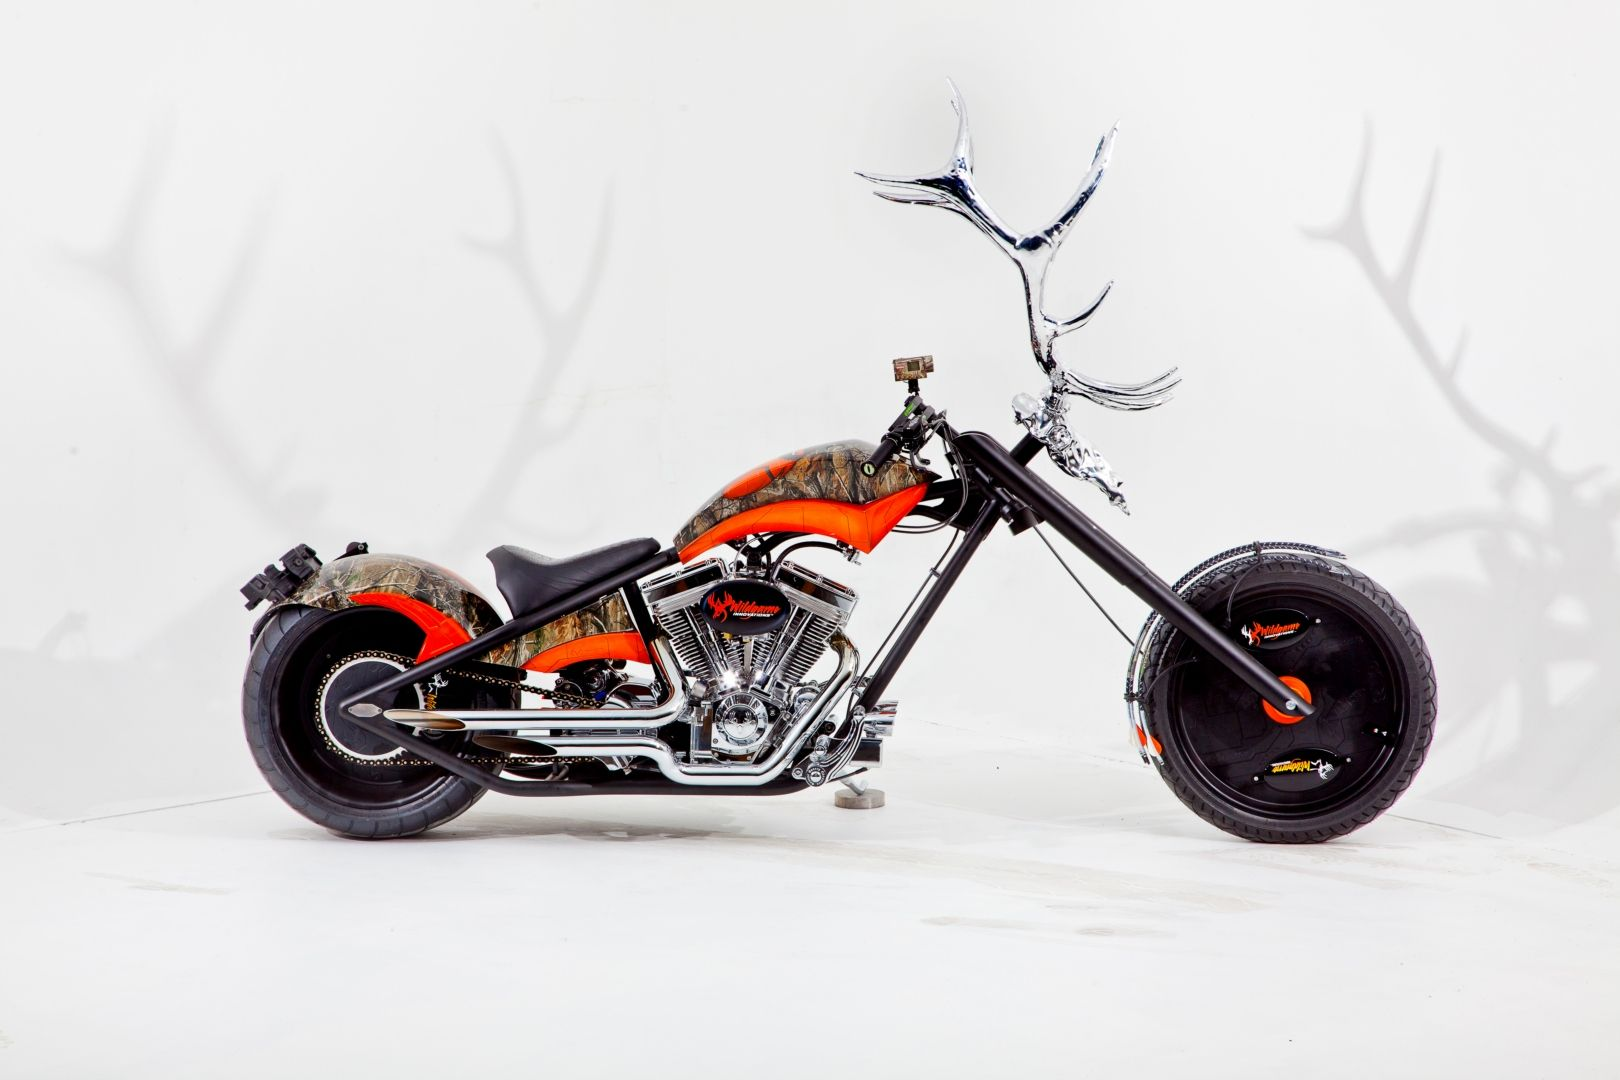 Occ choppers occ elk antler custom motorcycle photo 1